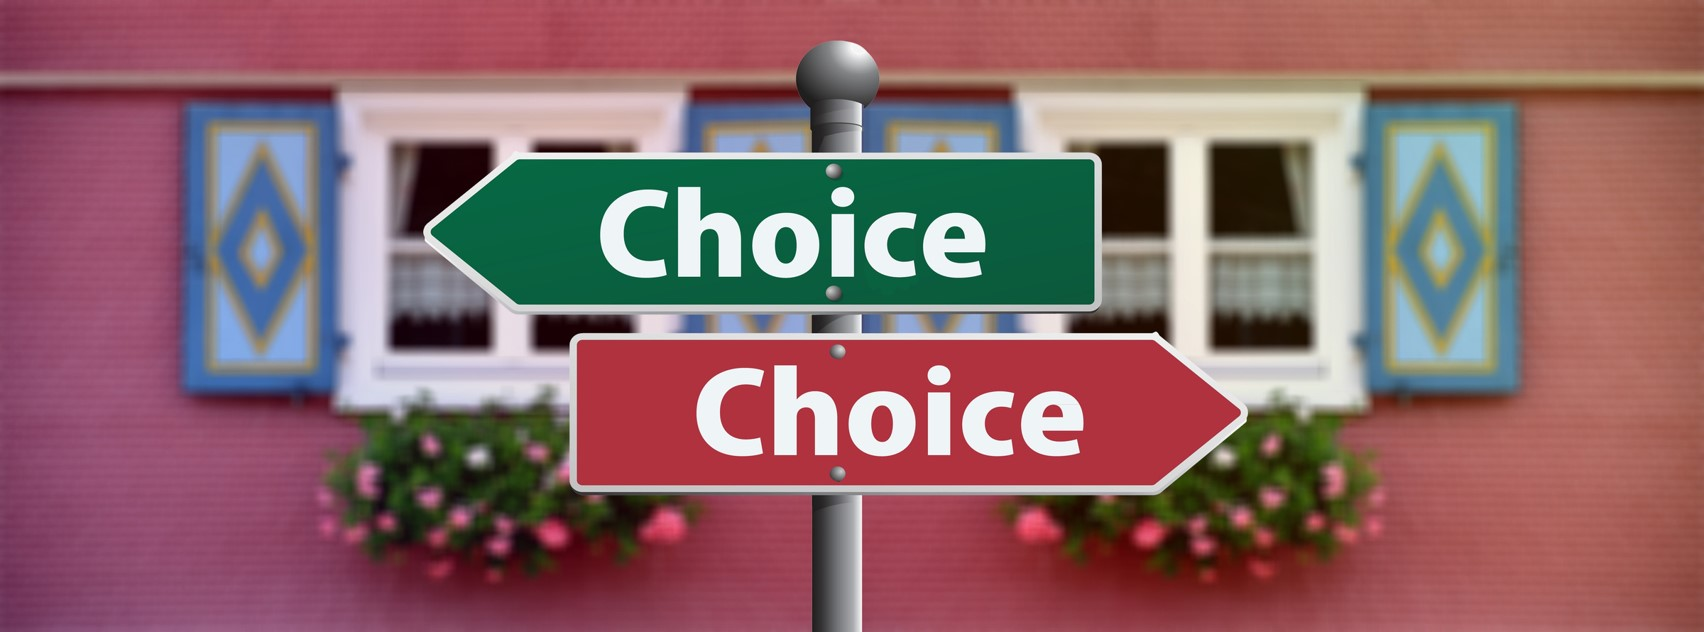 Photo of 2 street signs saying Choice - Choice